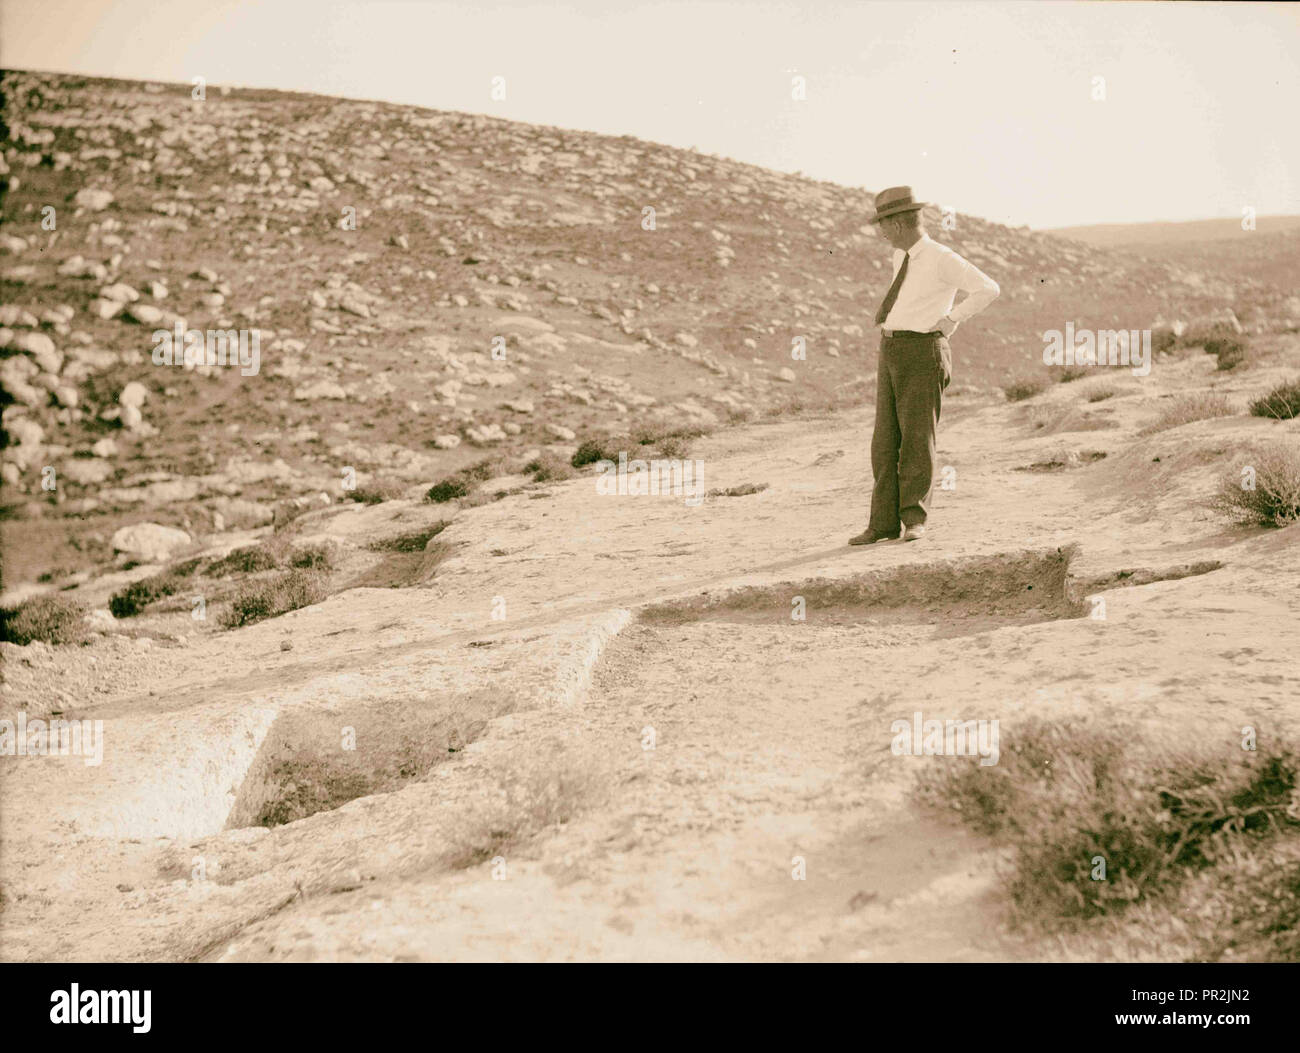 Various subjects of archaeological interest A primitive winepress showing treading-out vat. 1920, Middle East, Israel - Stock Image